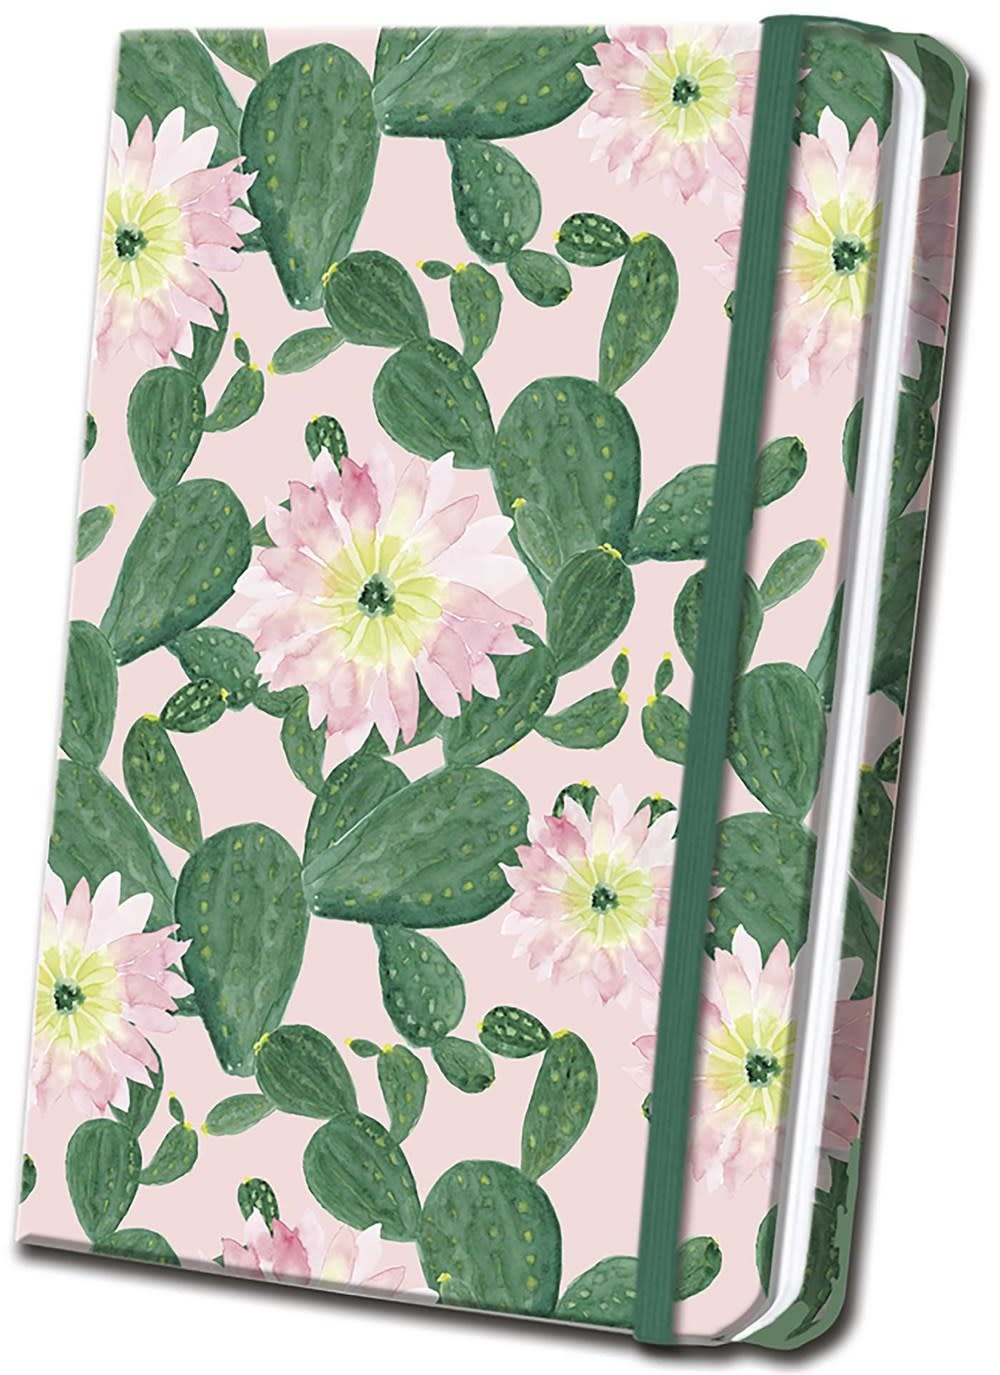 Thunder Bay Press Succulent Linen Journal